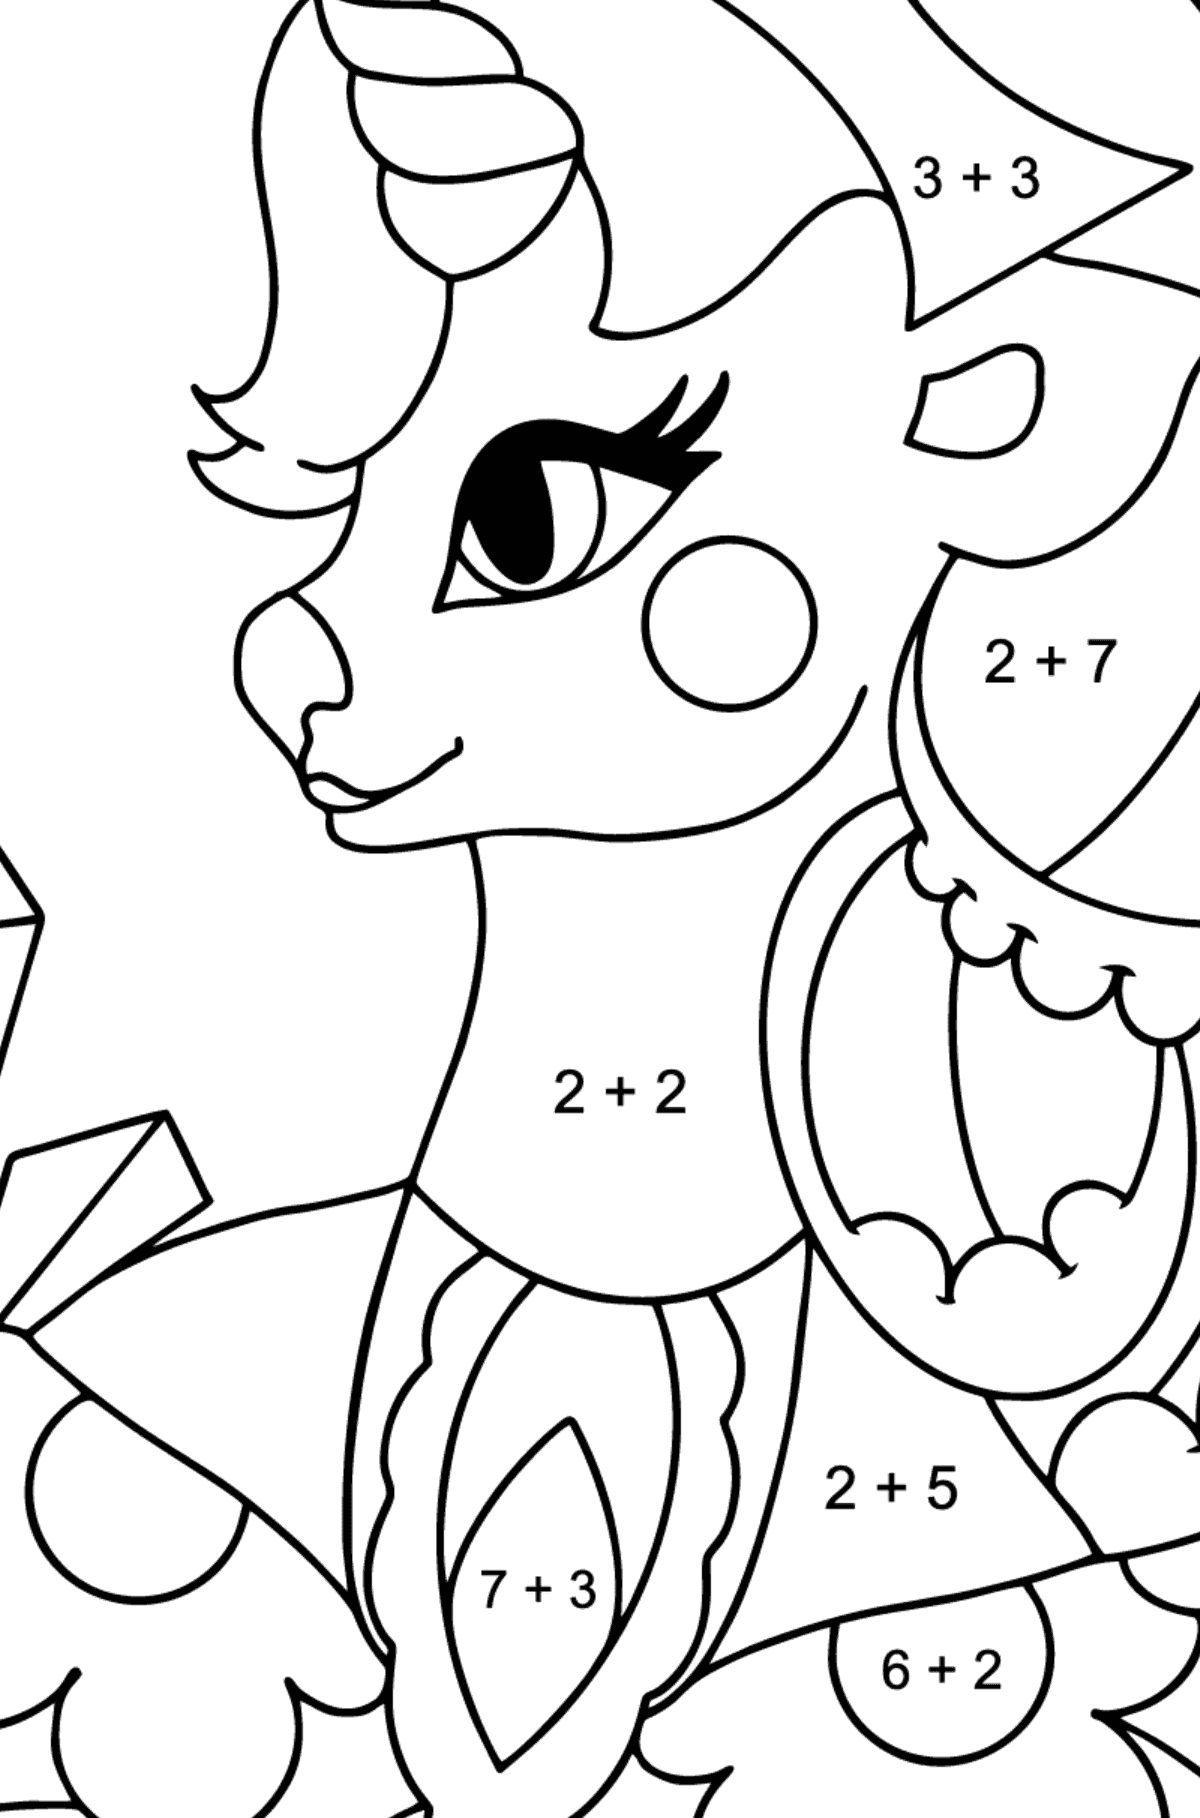 Simple Coloring Page - A Unicorn Queen for Children  - Color by Number Addition